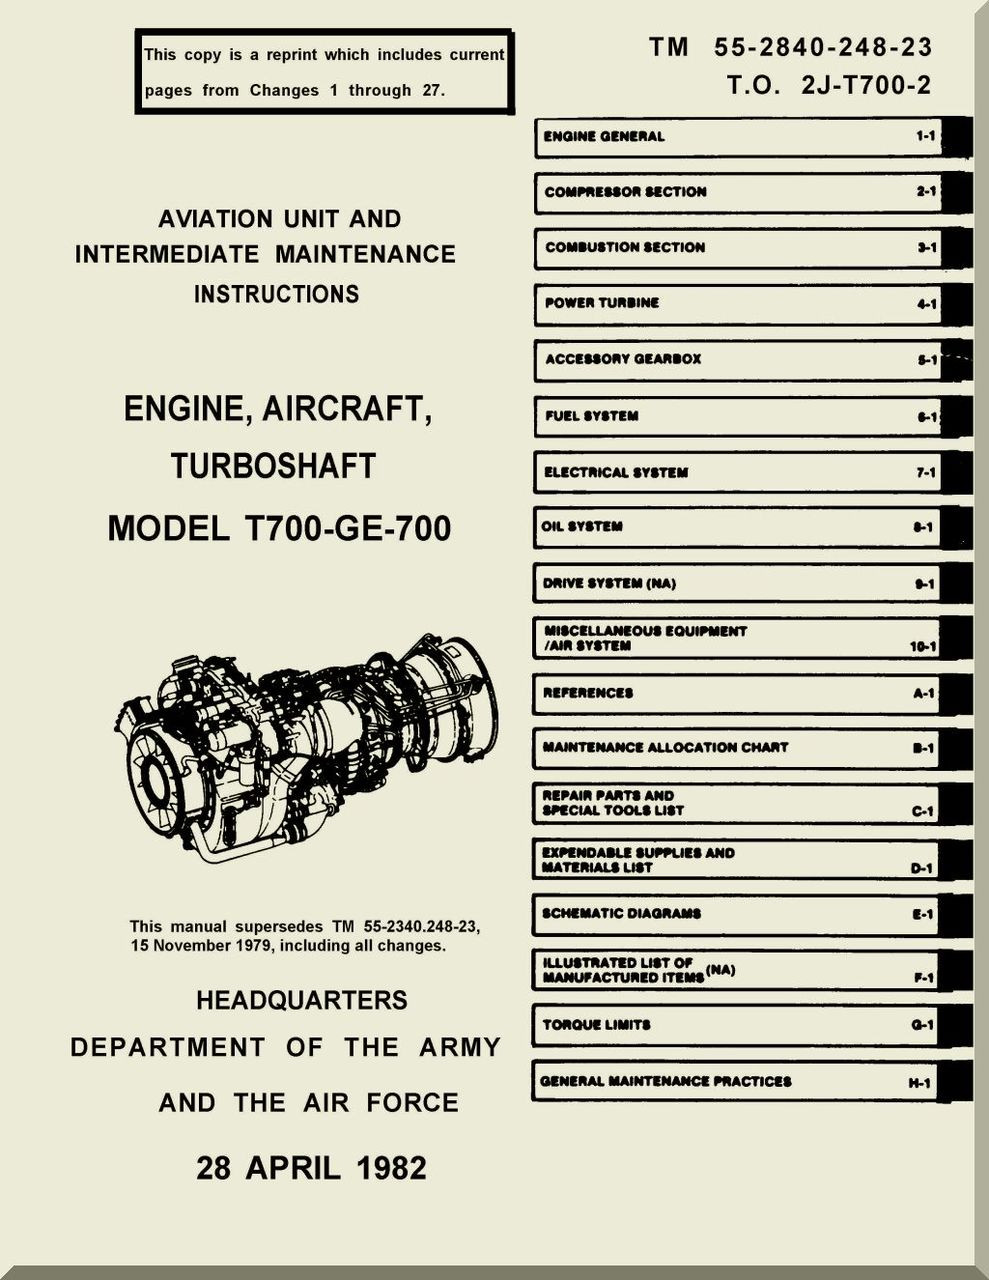 GE T-700-GE-700 Aircraft Turbo Shaft Engine Intermediate Maintenance Manual  2J-T700-2